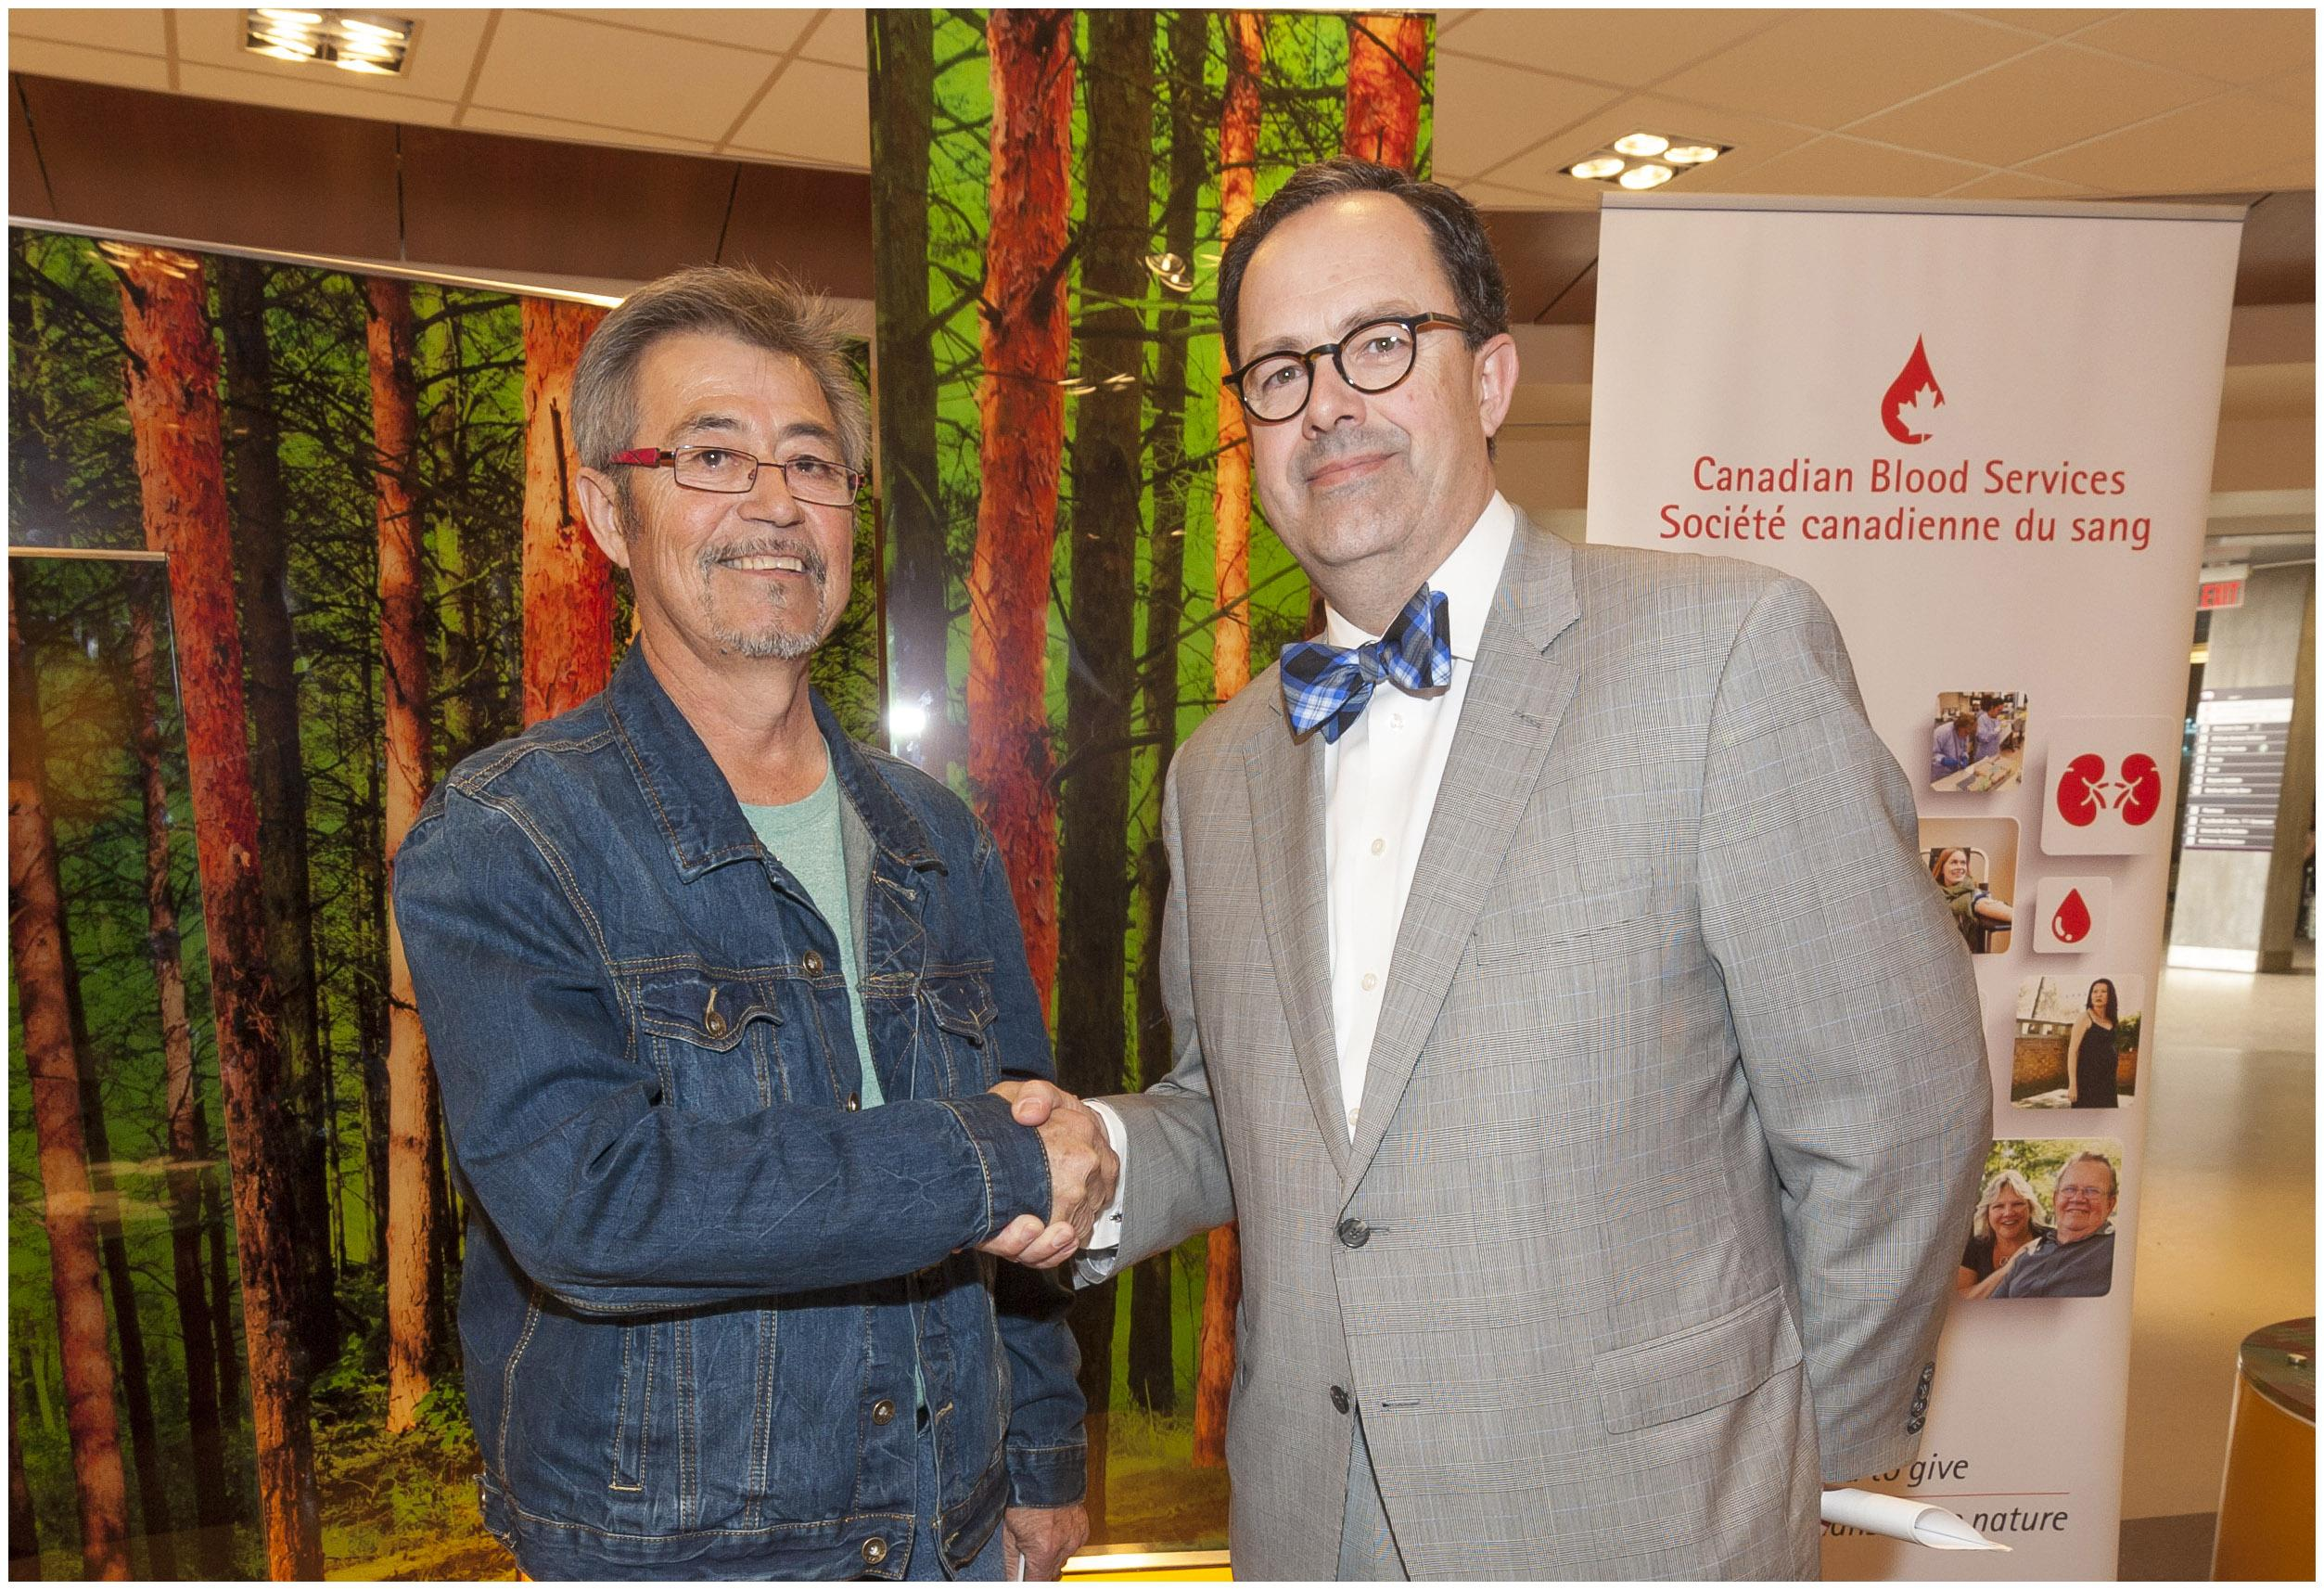 Arnold Dysart (left) pictured with Dr. Peter Nickerson (right), Medical Advisor, Organ Donation and Transplantation Division, Canadian Blood Services. Arnold received his kidney in 2014